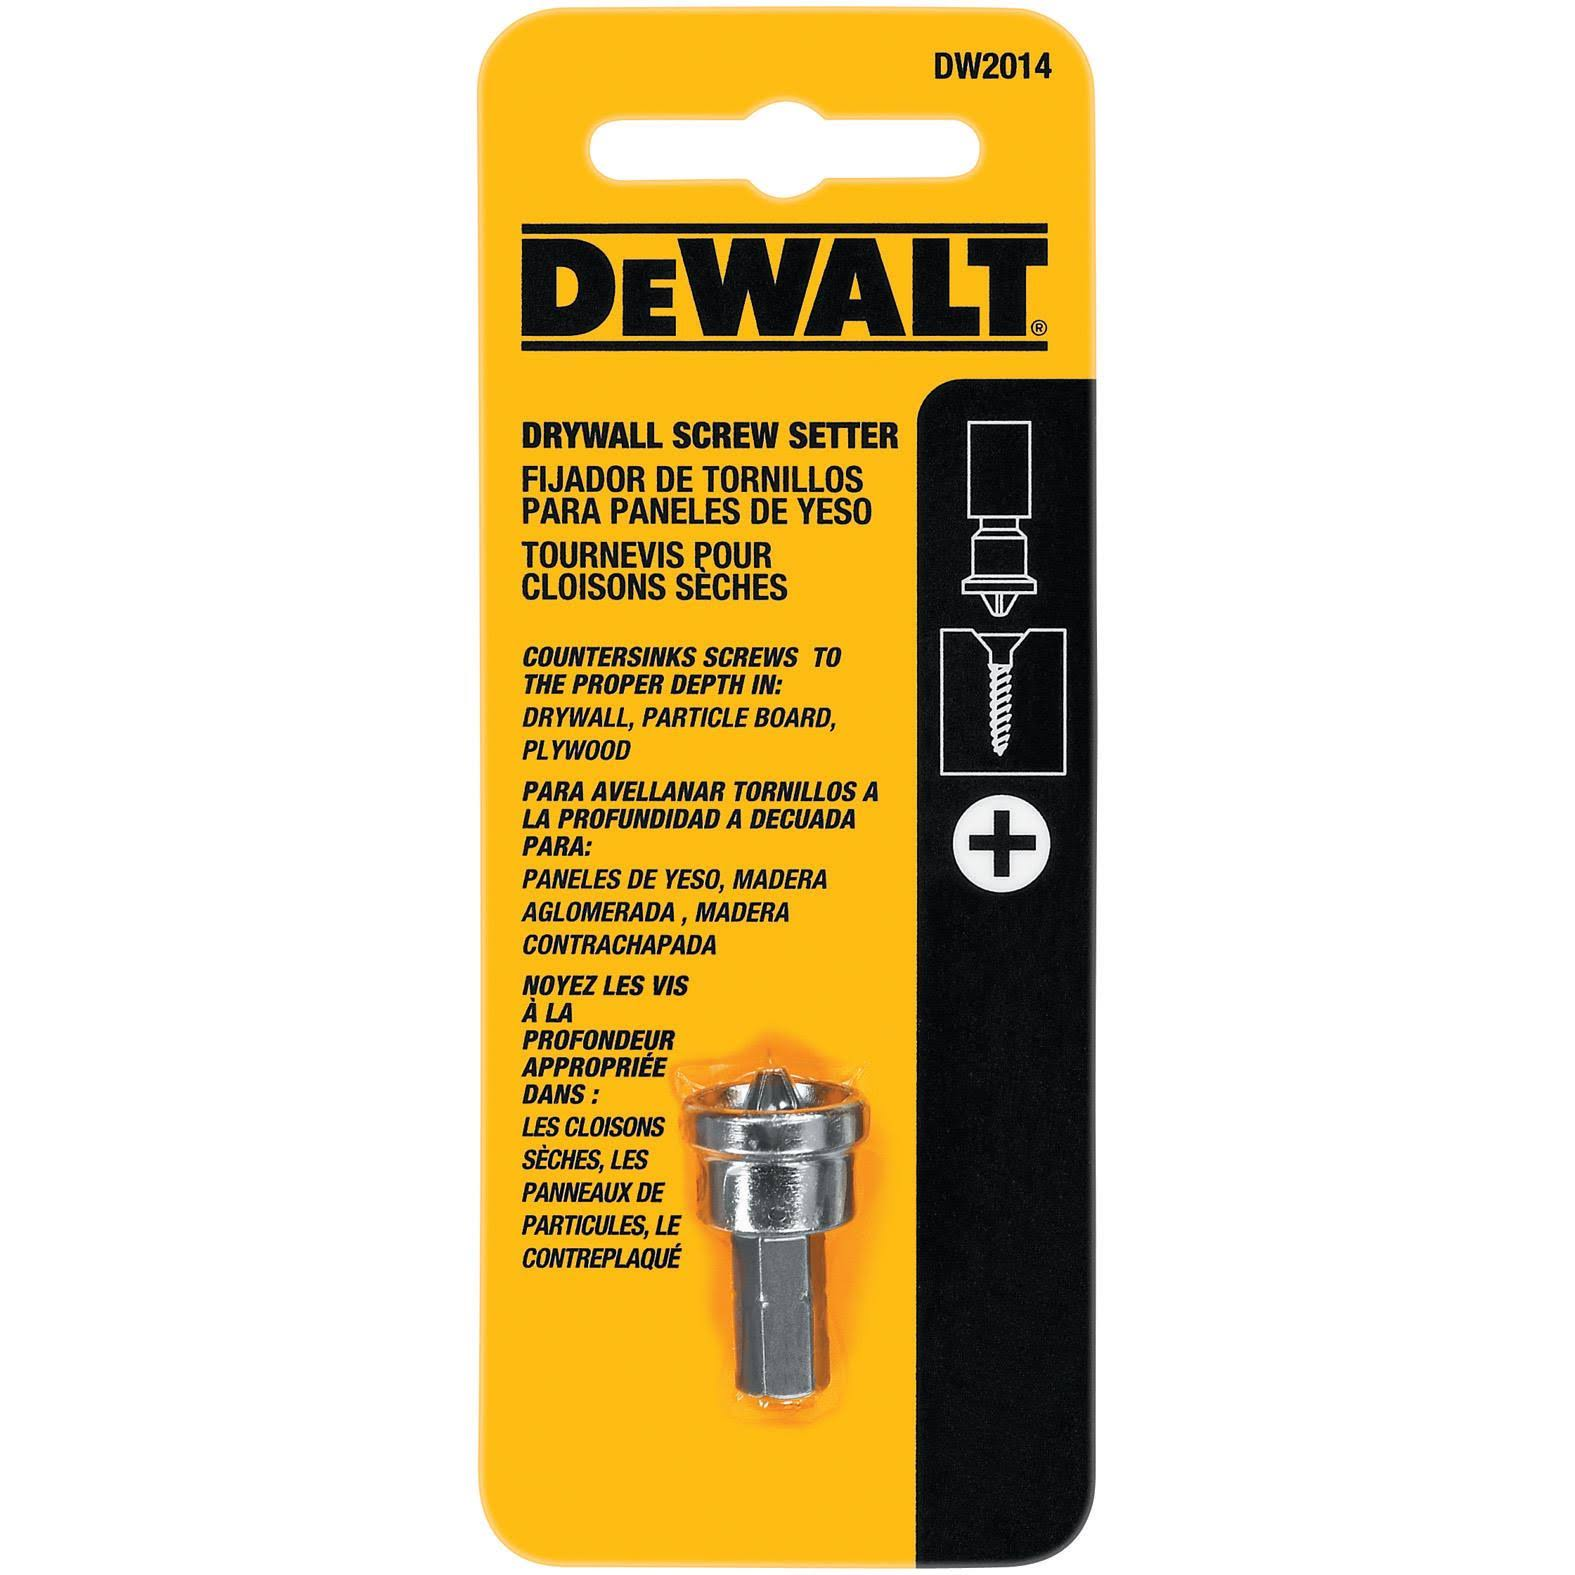 Dewalt DW2014 Drywall Screw Setter Bit Tip